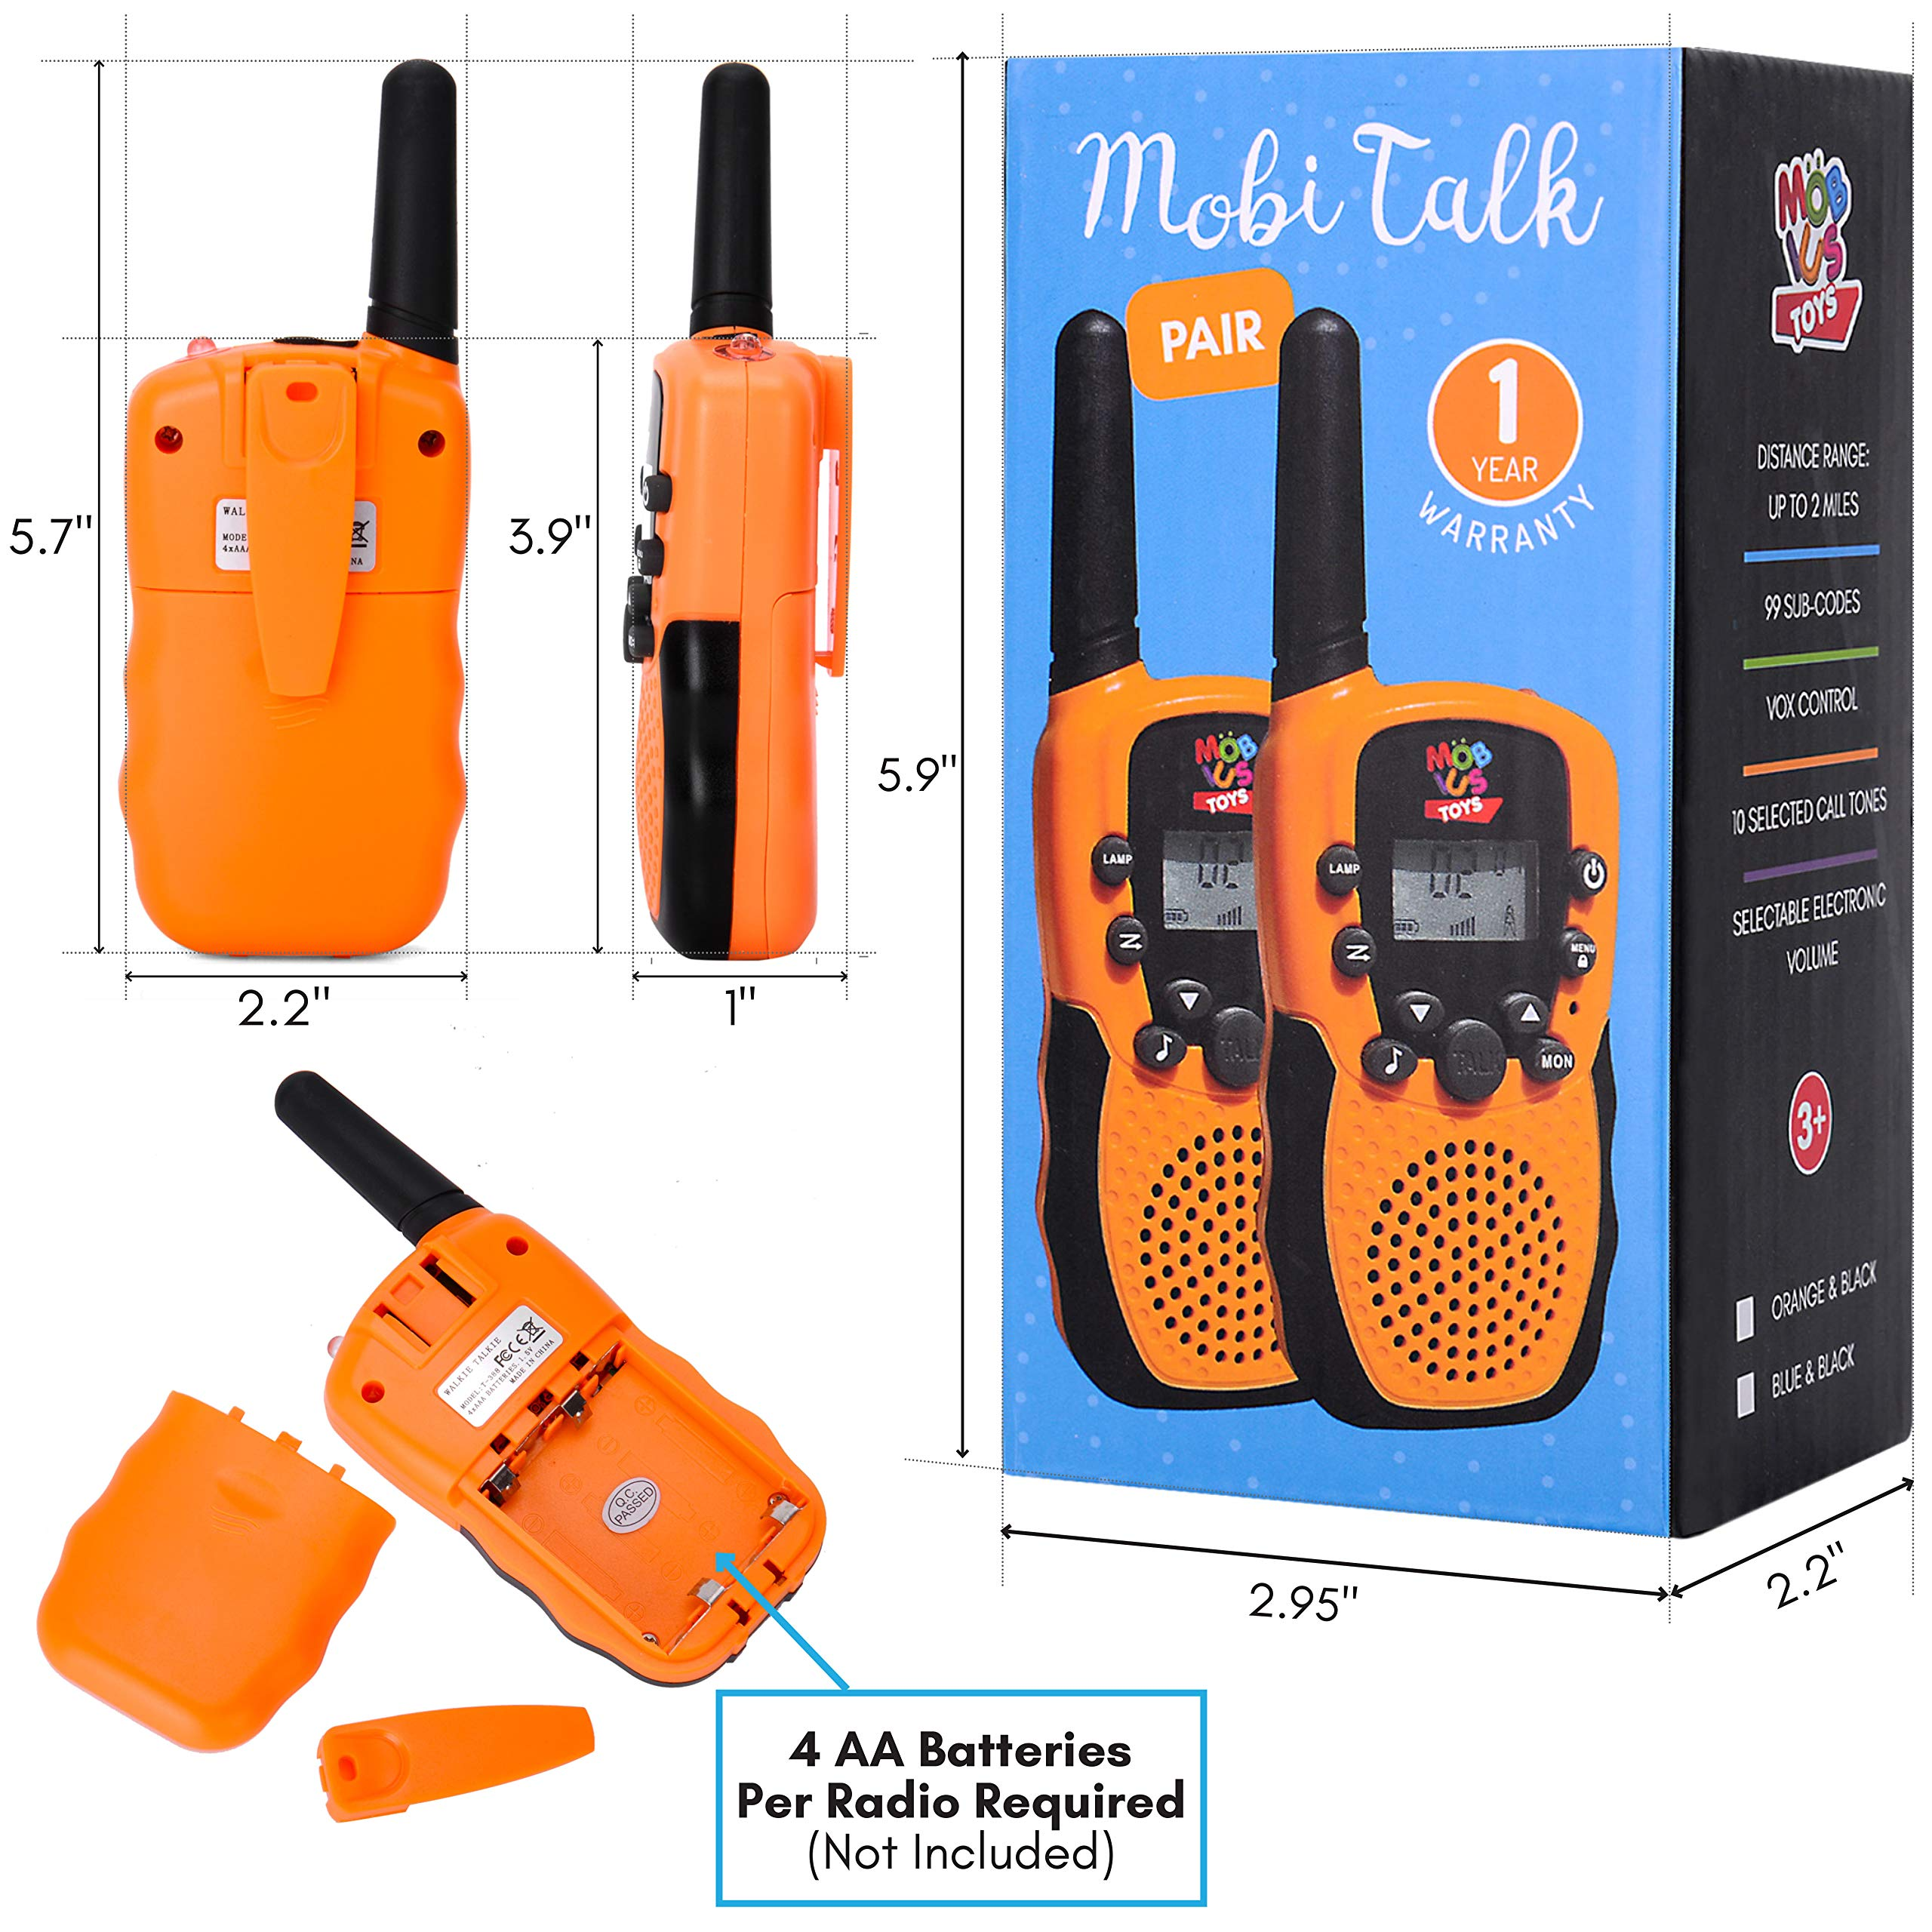 Walkie Talkies for Kids - (Vox Box) Voice Activated Walkie Talkies Toy for Kids, Two Way Radios Pair for Boys & Girls, Limited Edition Color Best Gift Long Range 3+ Miles Children's Walkie Talkie Set by MOBIUS Toys (Image #6)